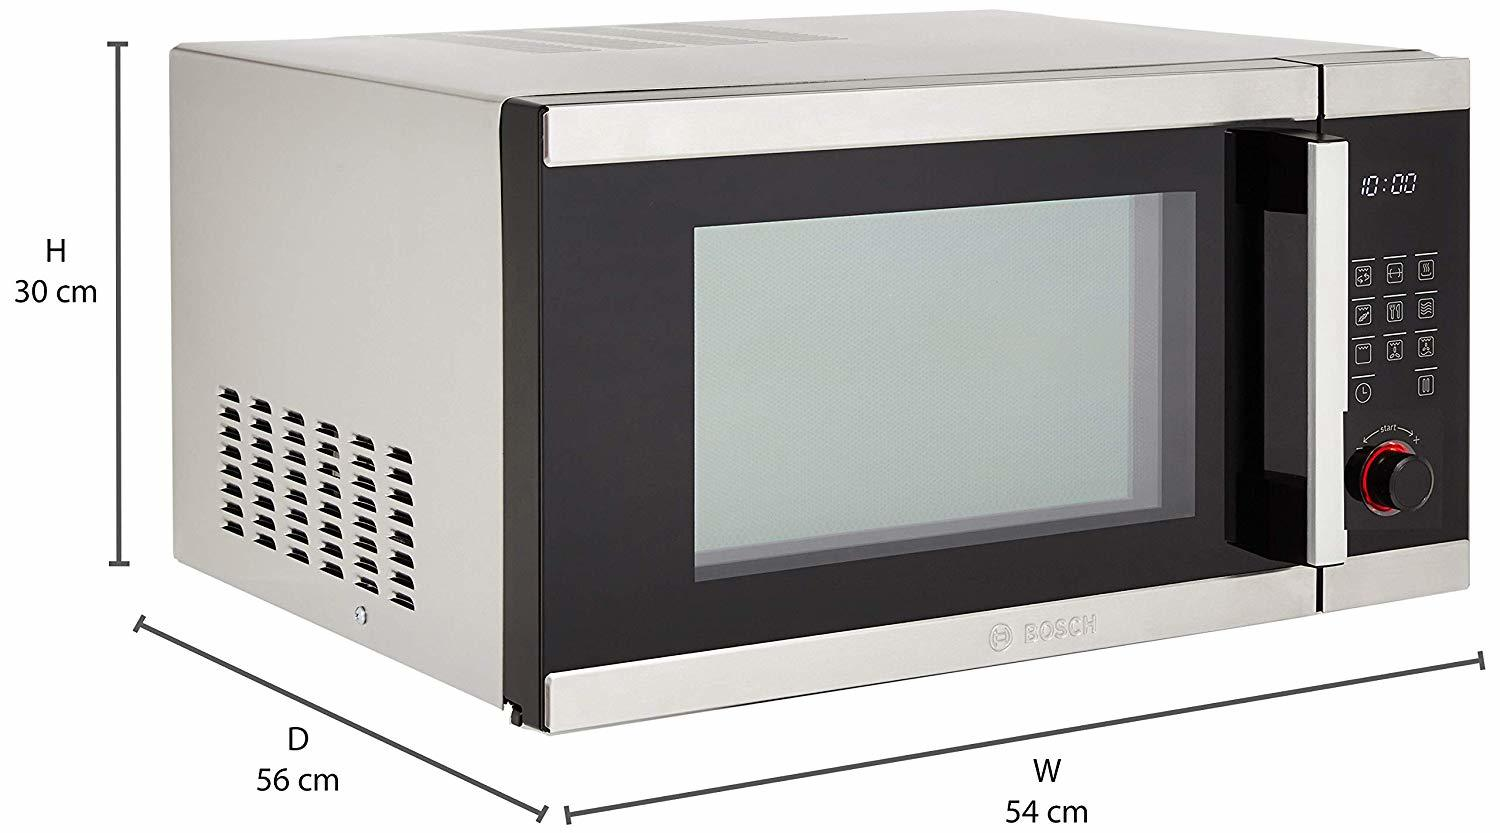 Bosch 32 L Convection Microwave Oven (HMB55C453X, Stainless Steel and Black)